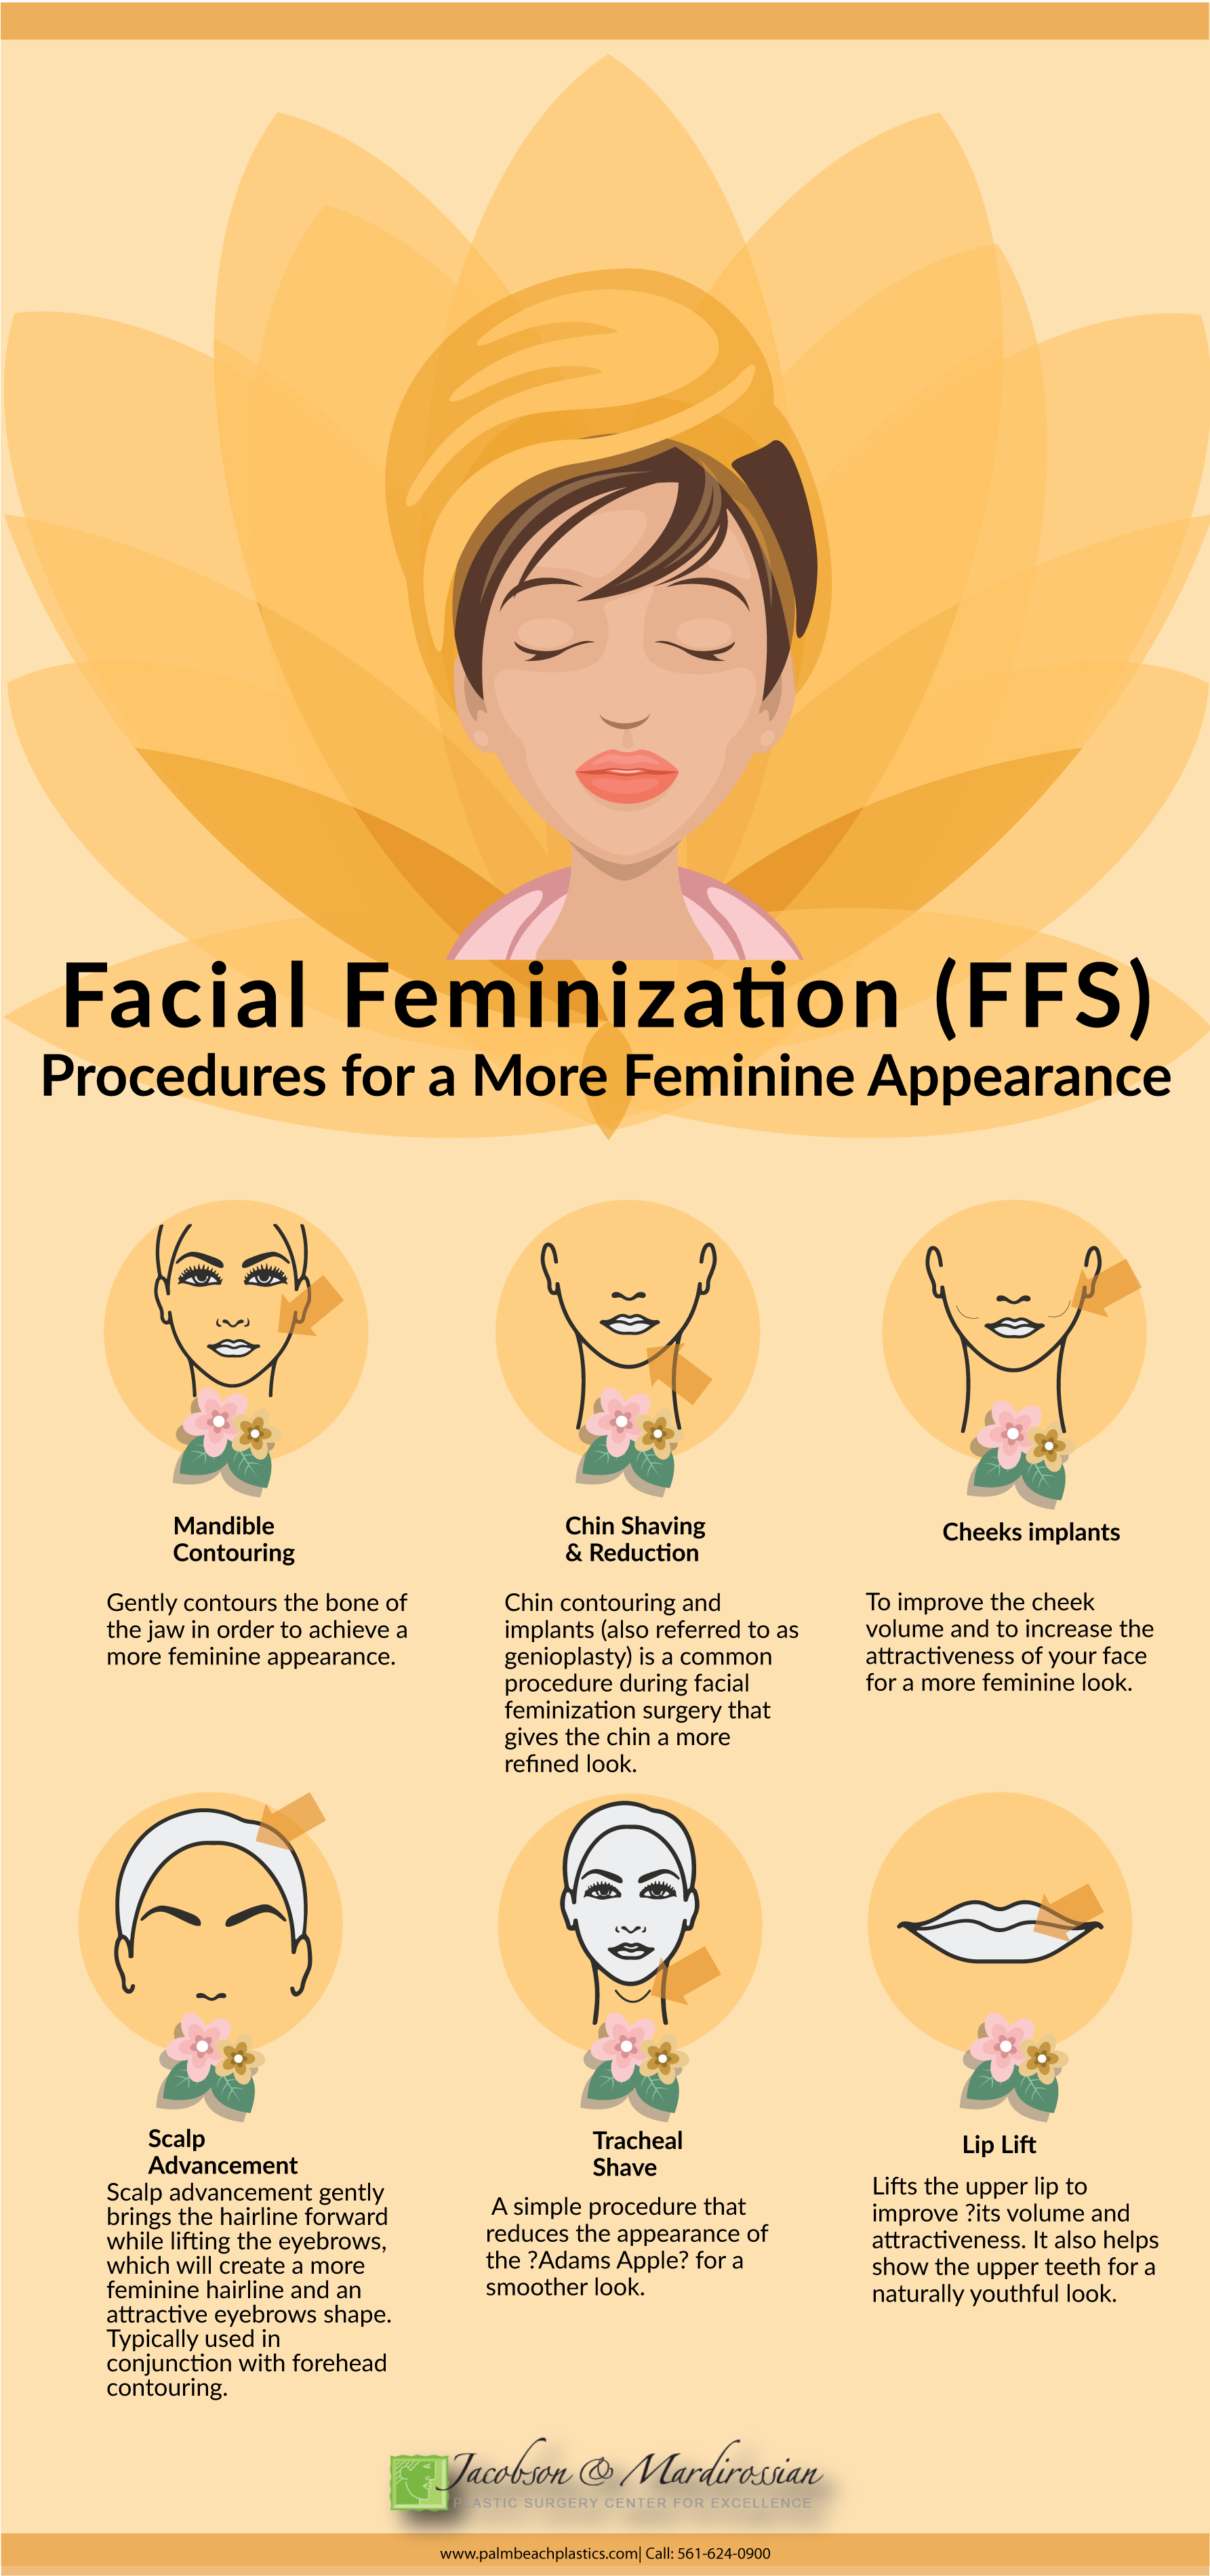 FFS Procedures for a More Feminine Appearance | Visual ly